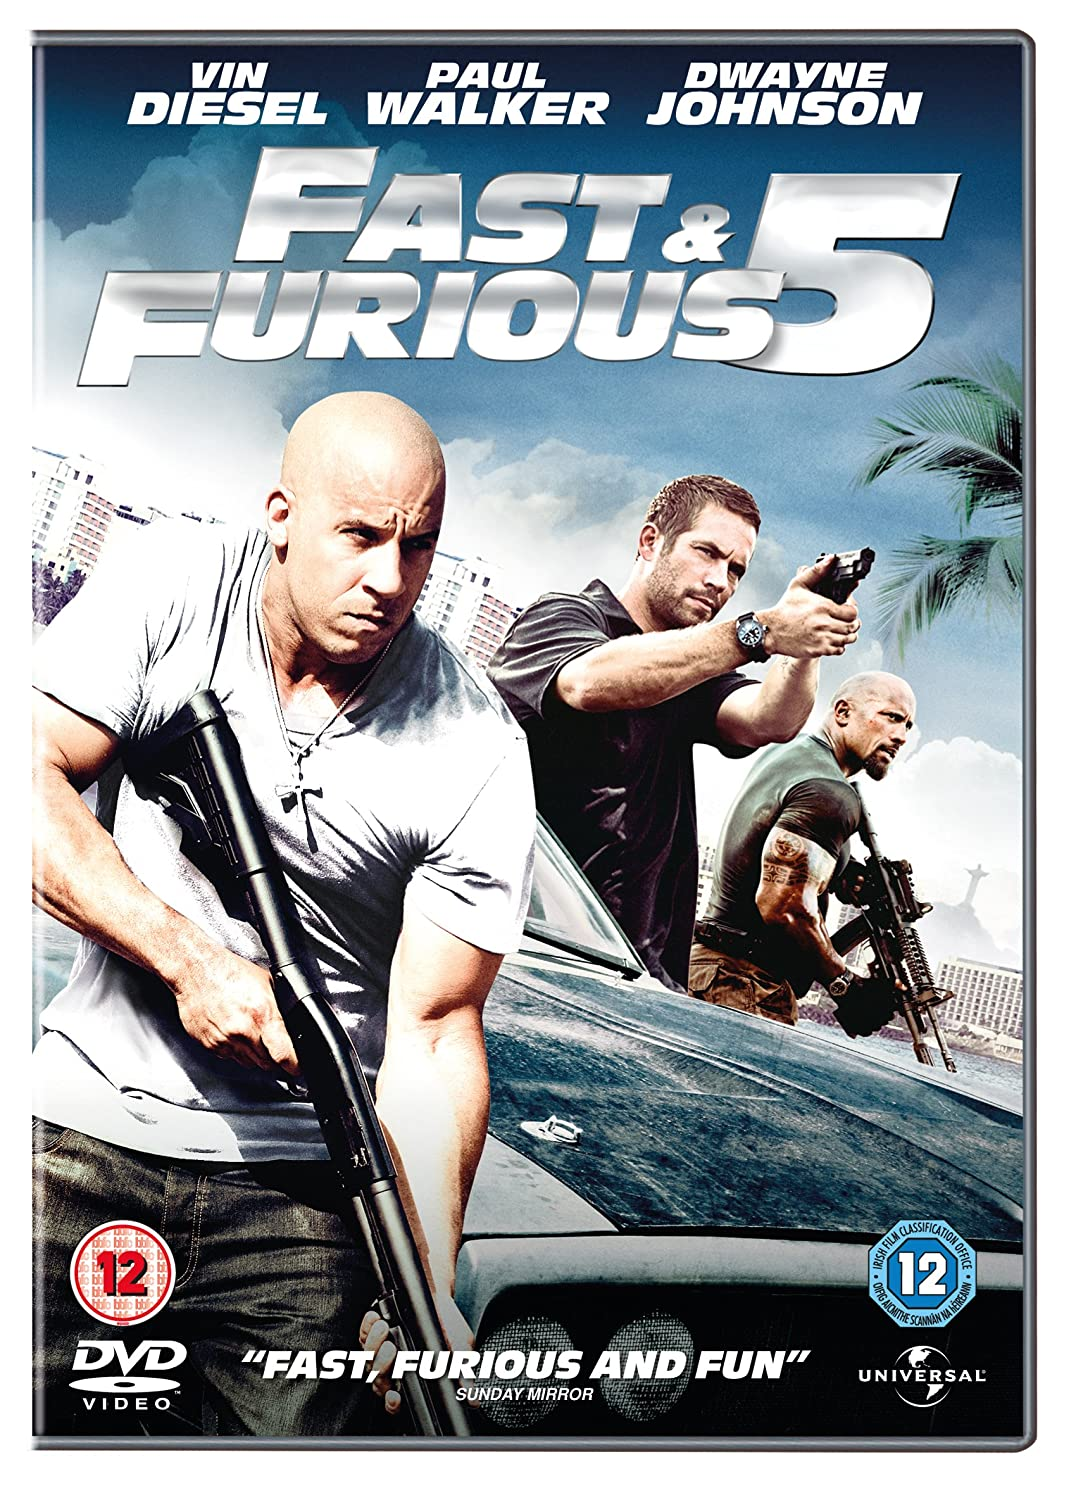 Fast and furious 5 songs downloadming